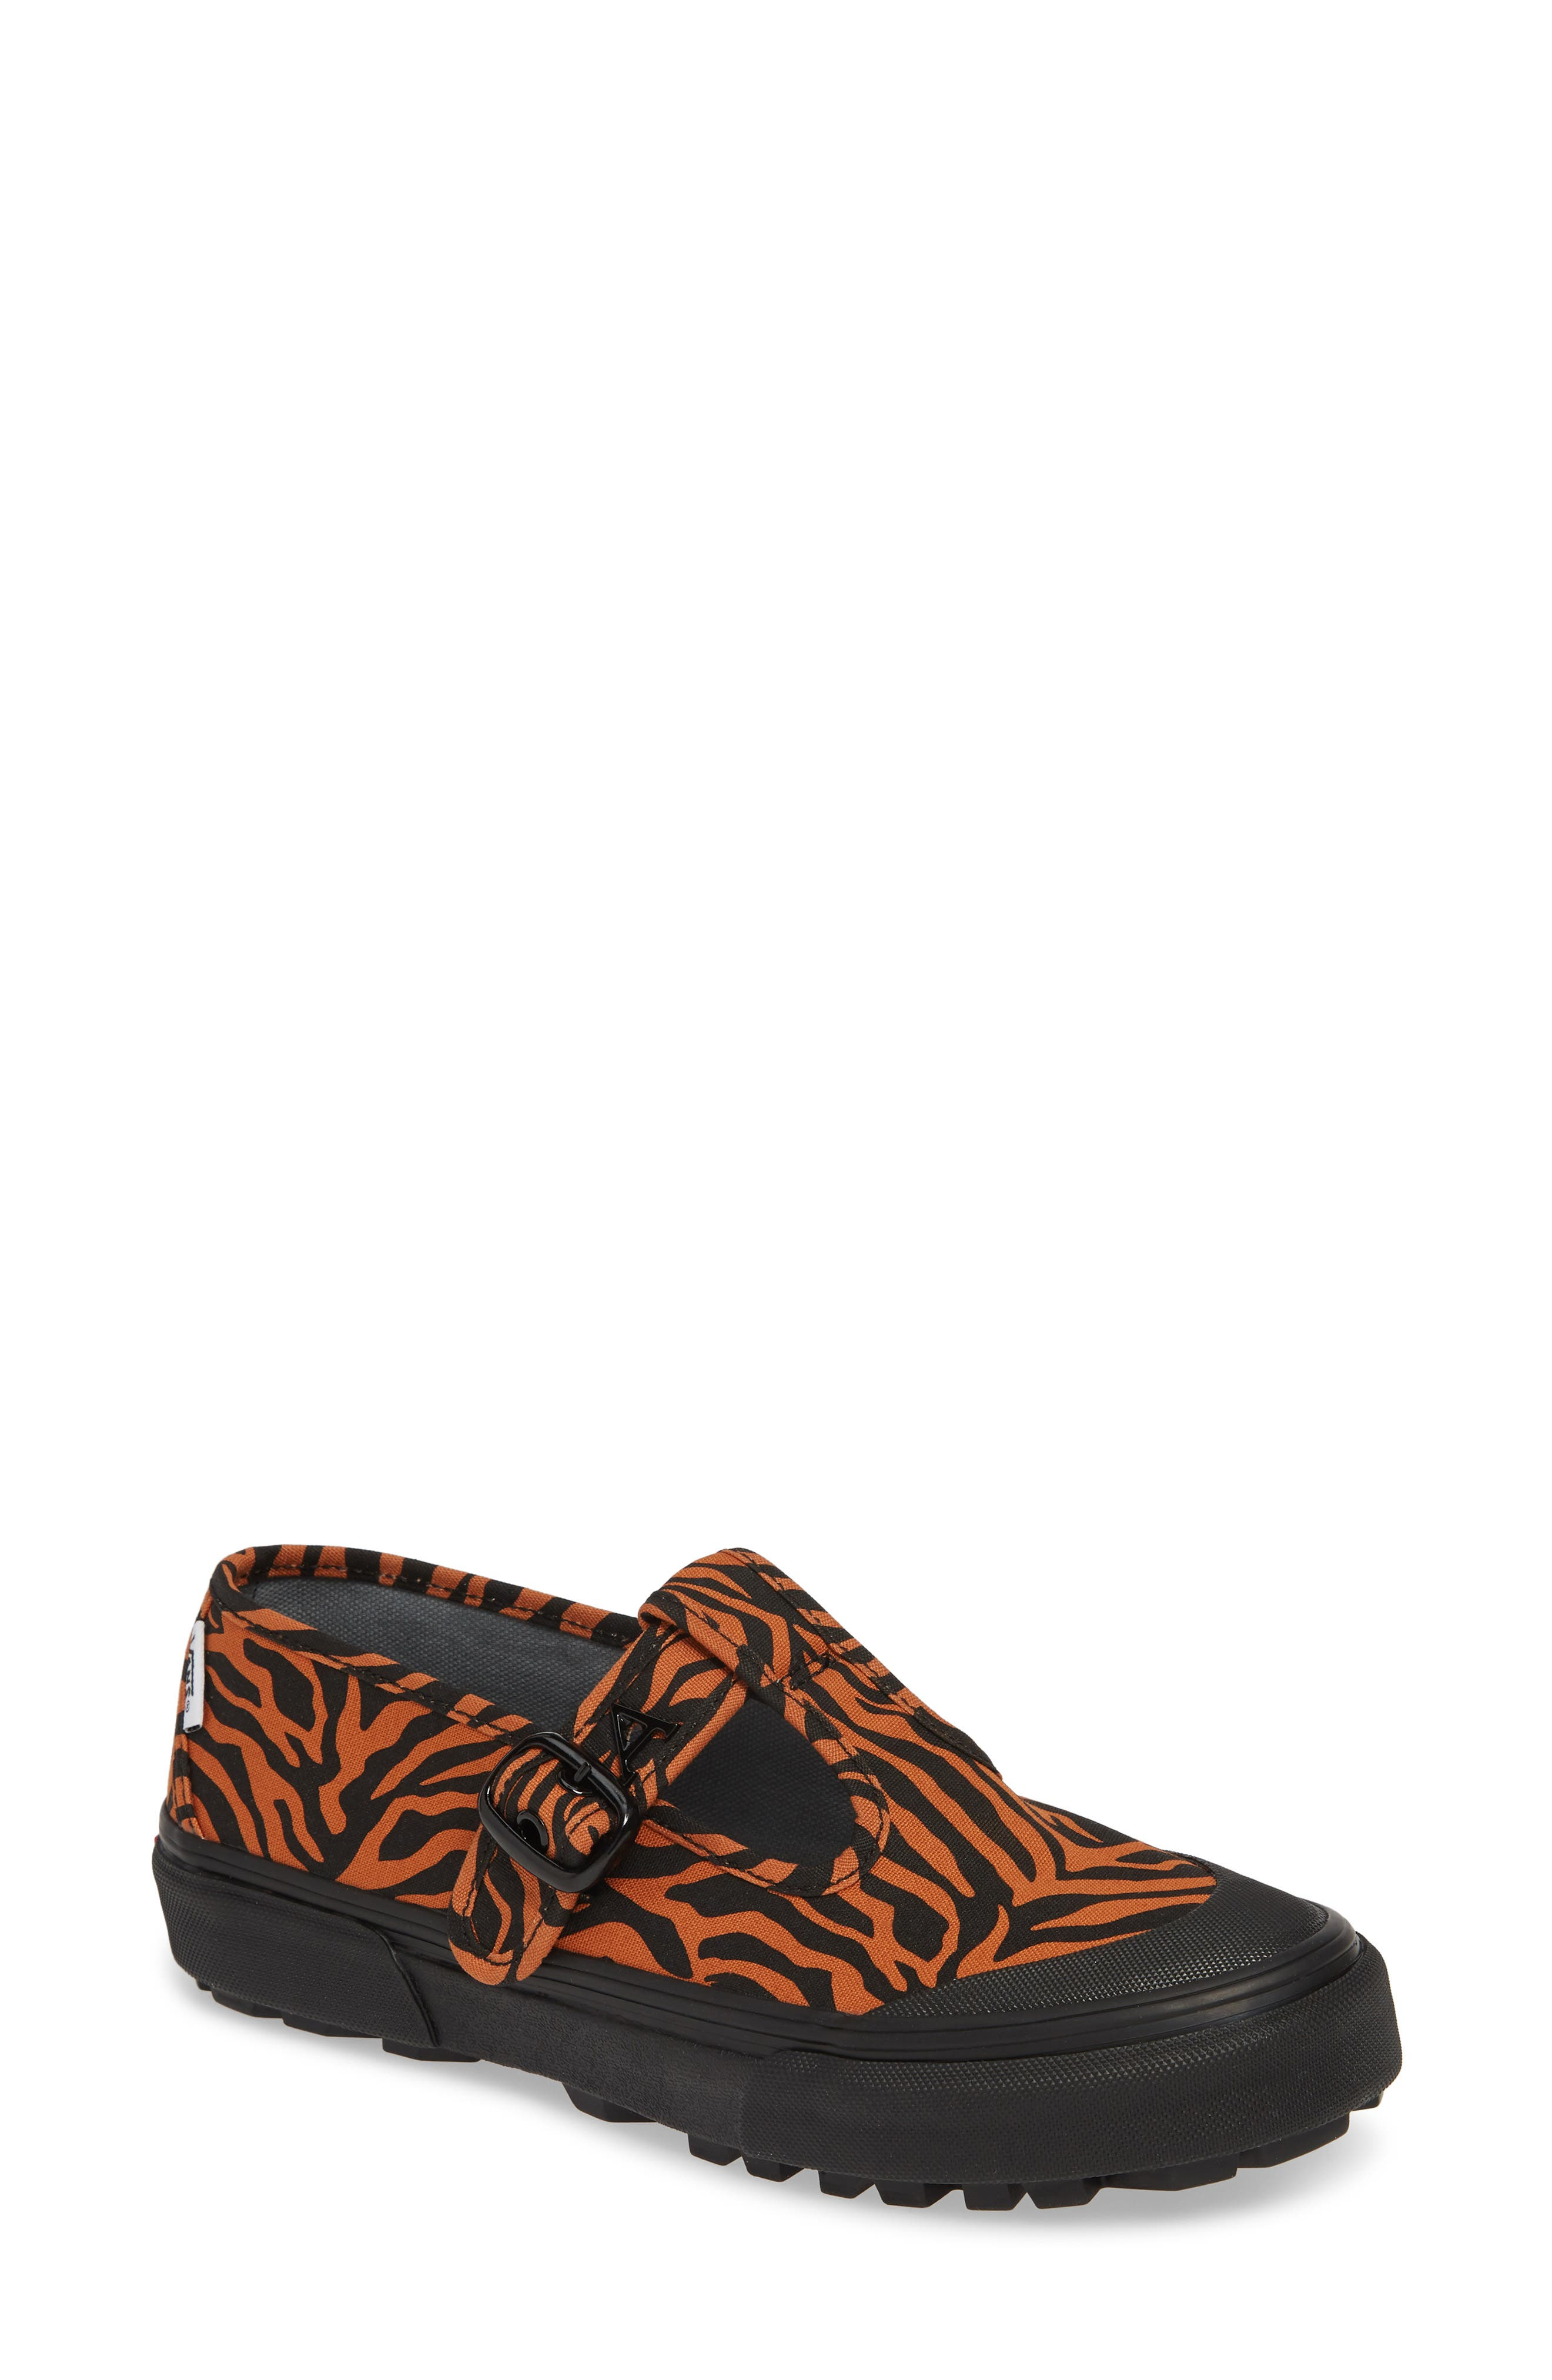 VANS x Ashley Williams Style 38 Tiger Sneaker, Main, color, TIGER/ BLACK